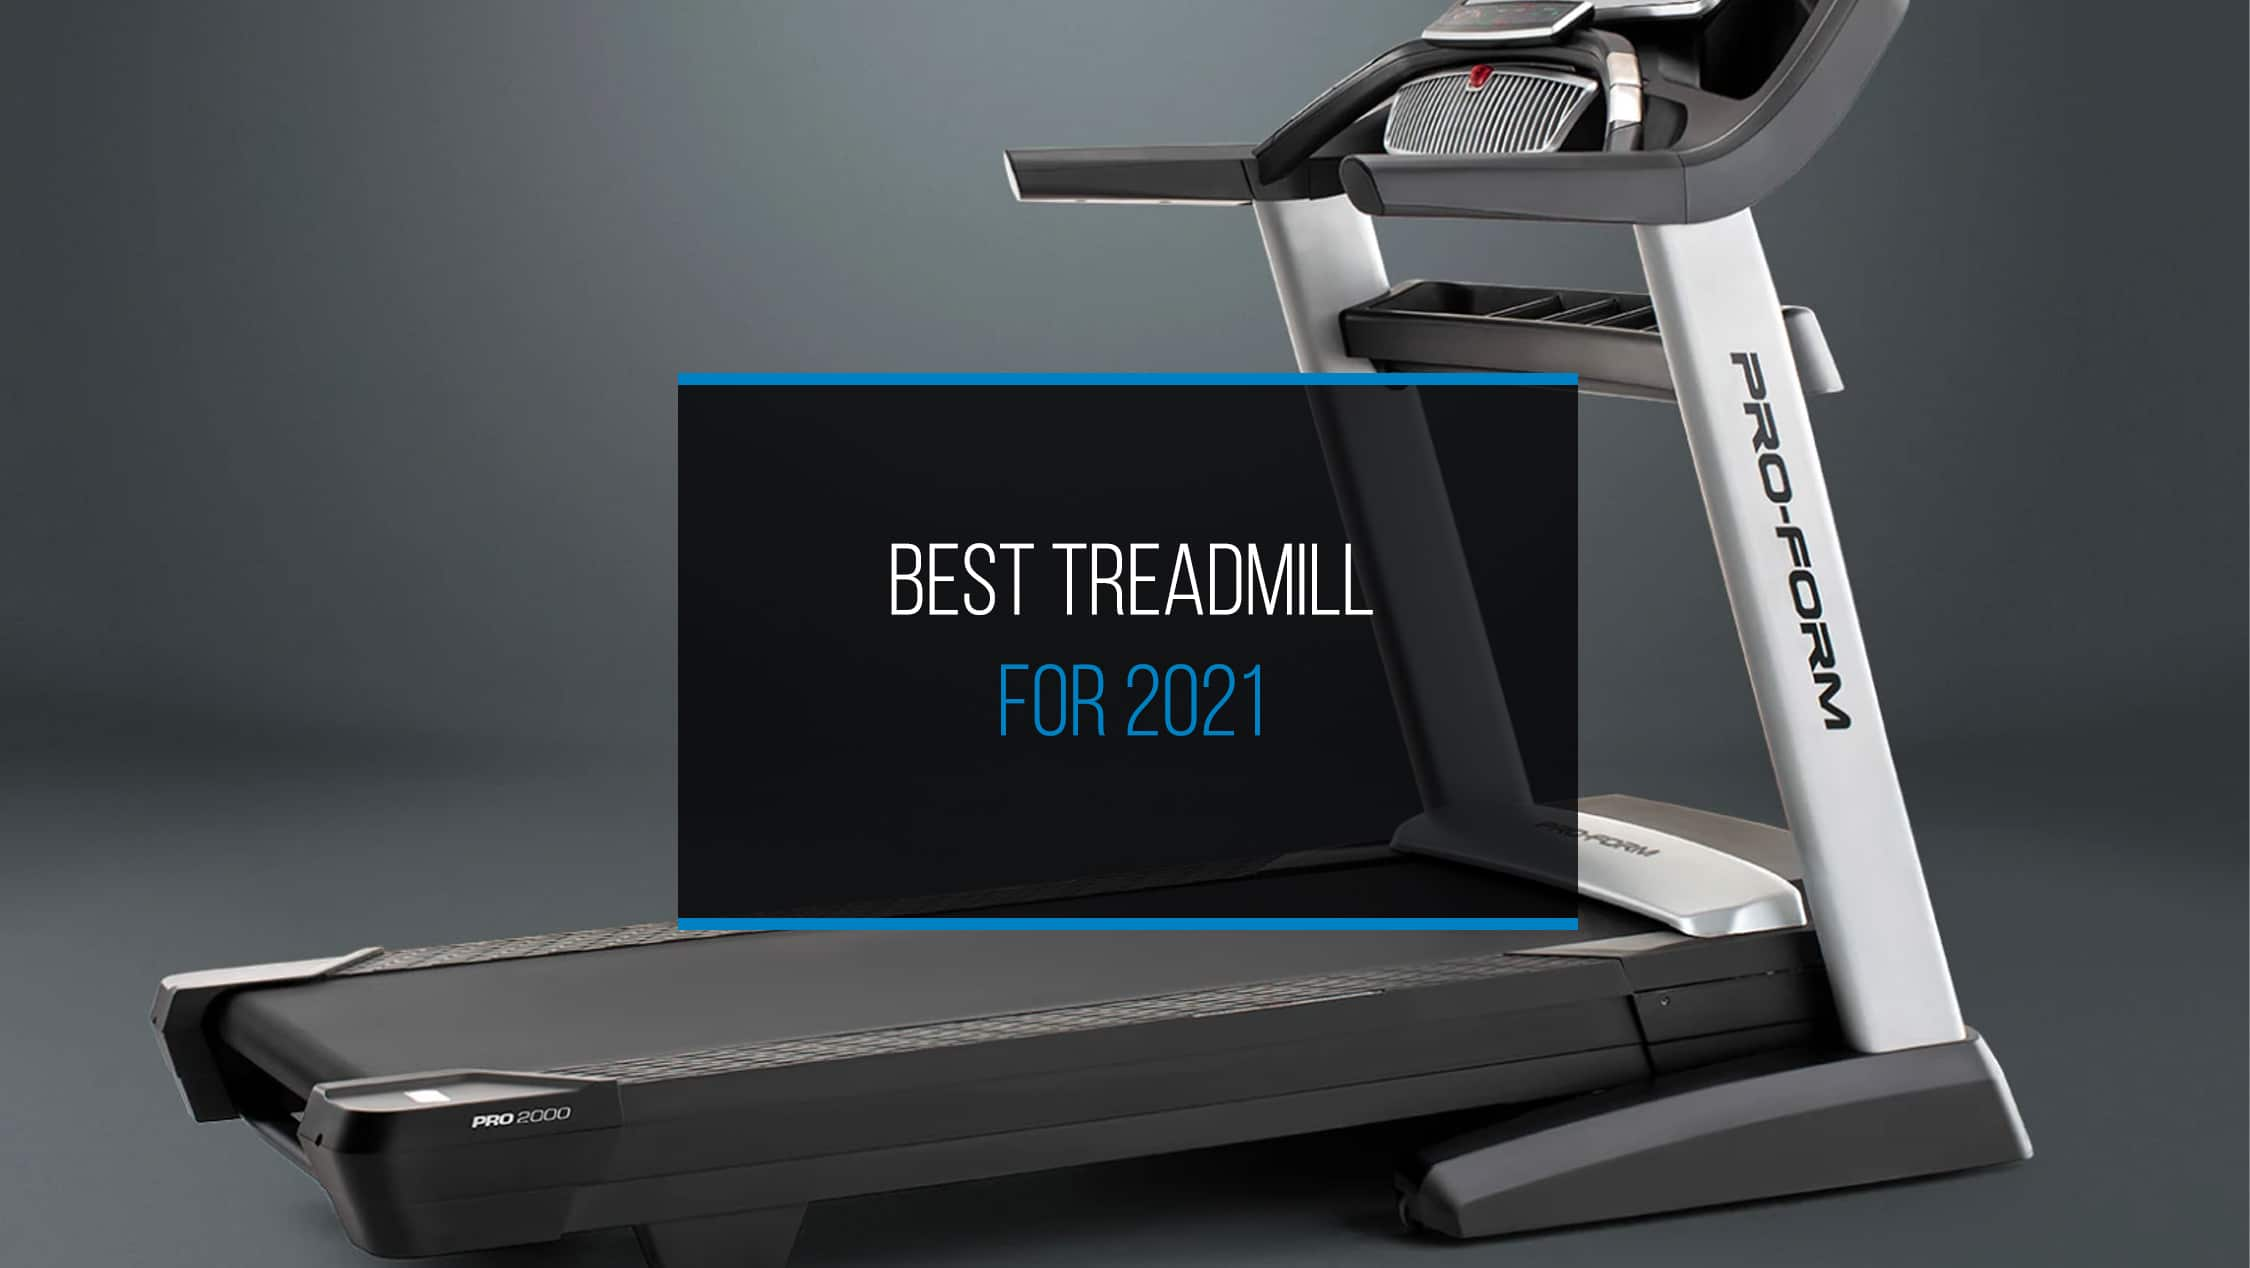 Best Treadmill for 2021